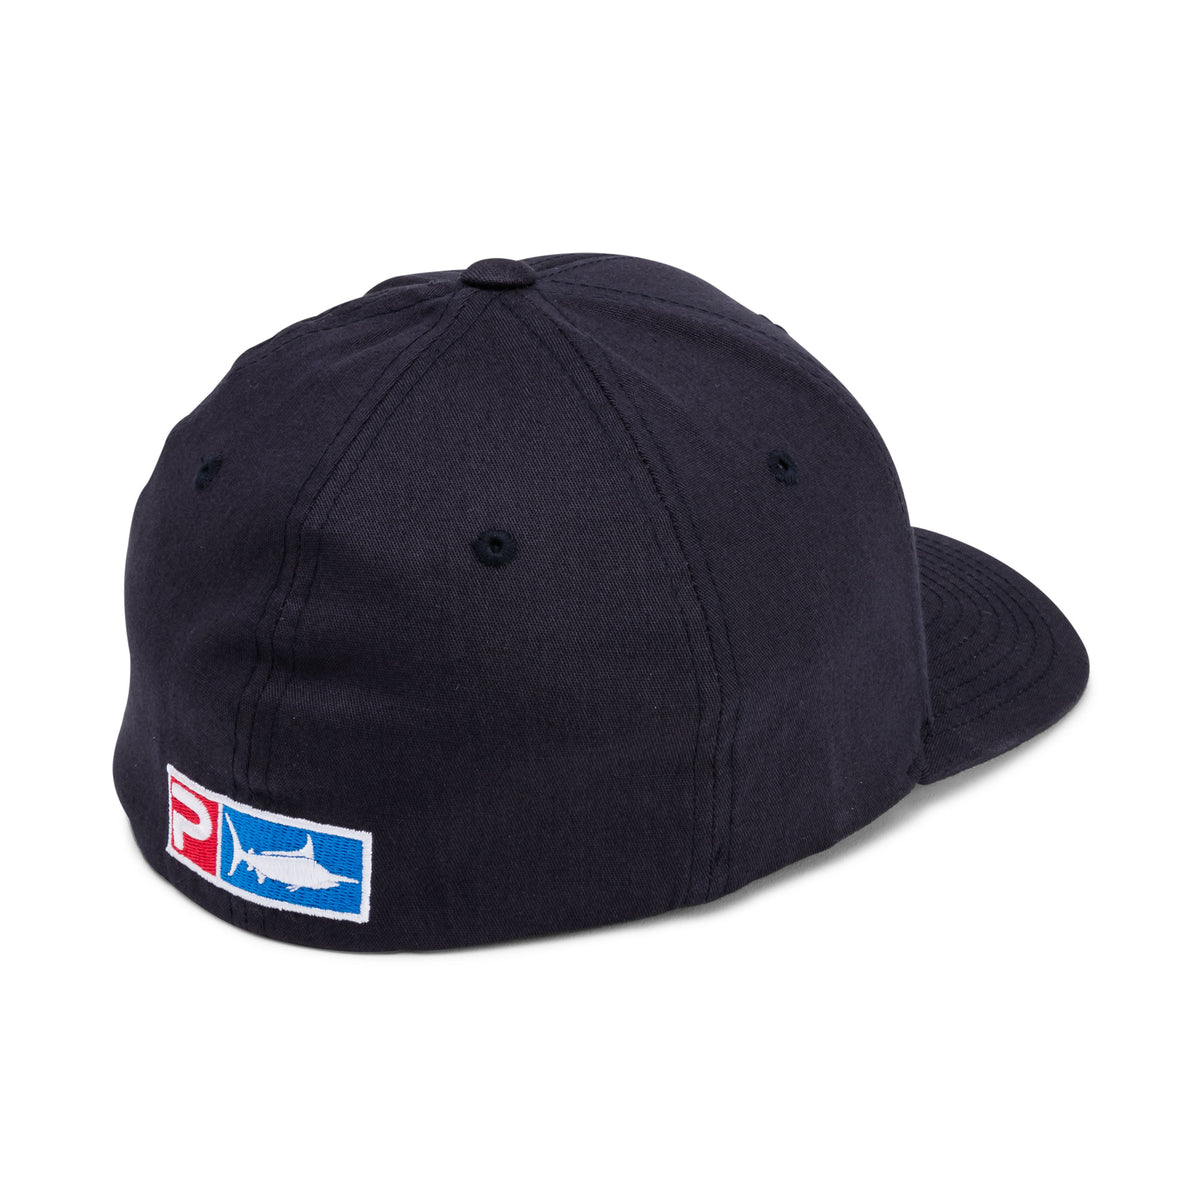 Pelagic Logo Flexfit Hat Big Image - 2